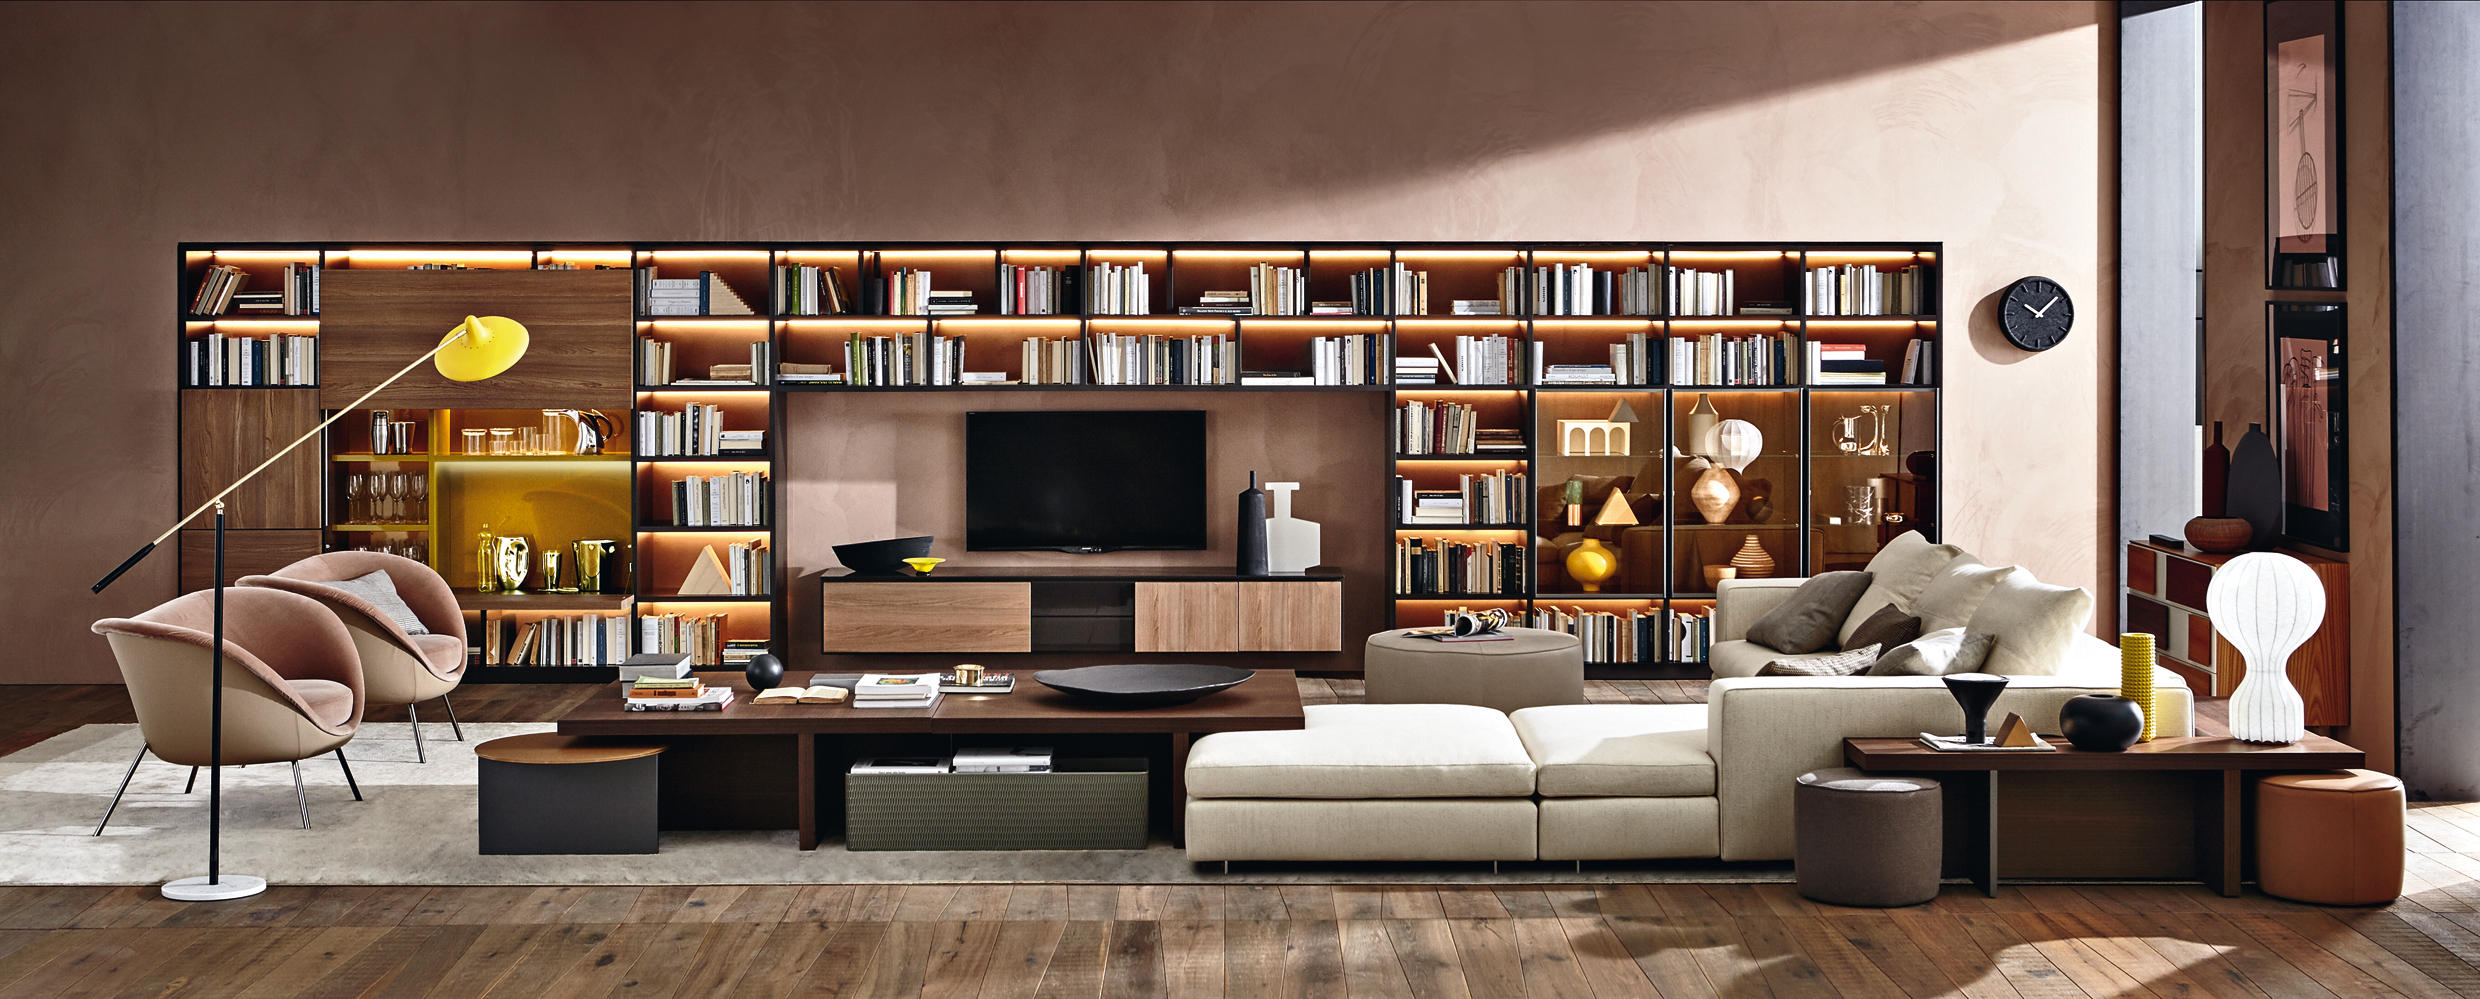 505_MULTIMEDIA  Multimedia sideboards from Molteni  C